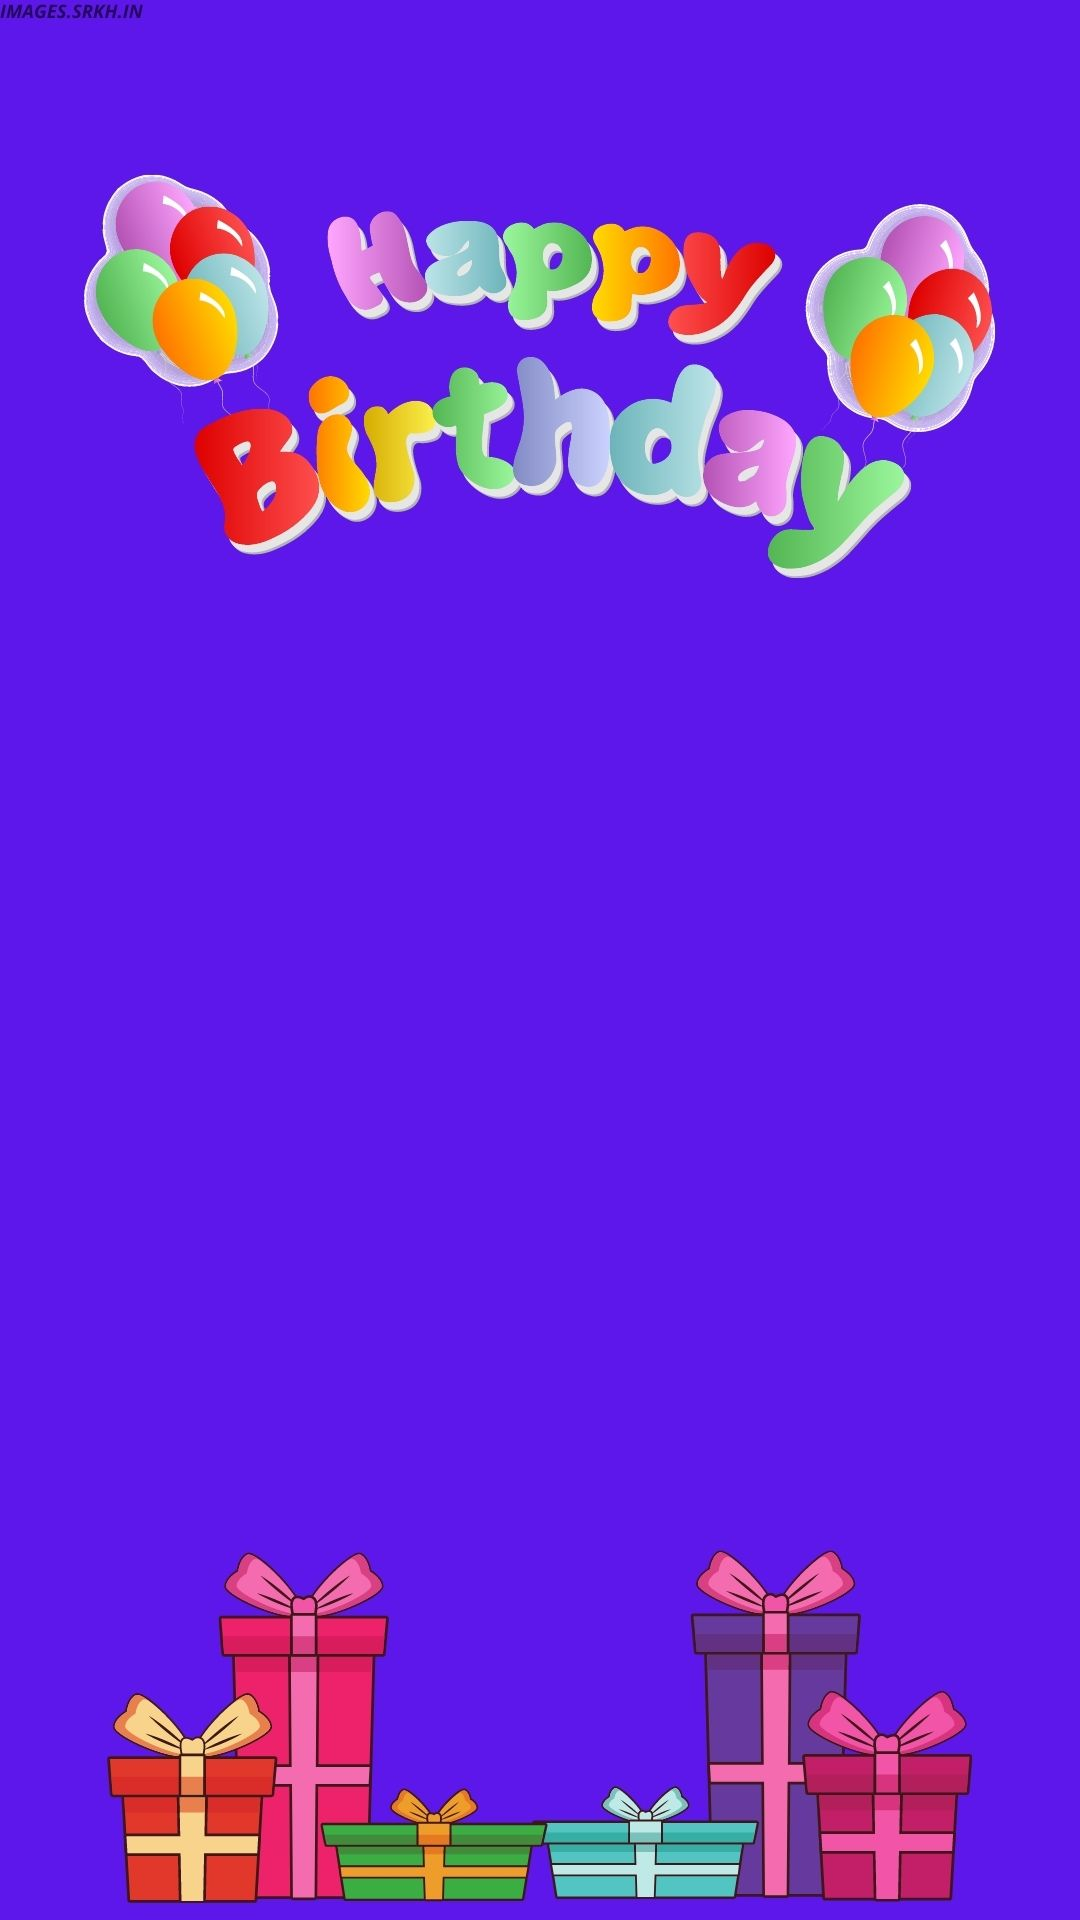 Happy Birthday Wallpaper Images HD full HD free download.